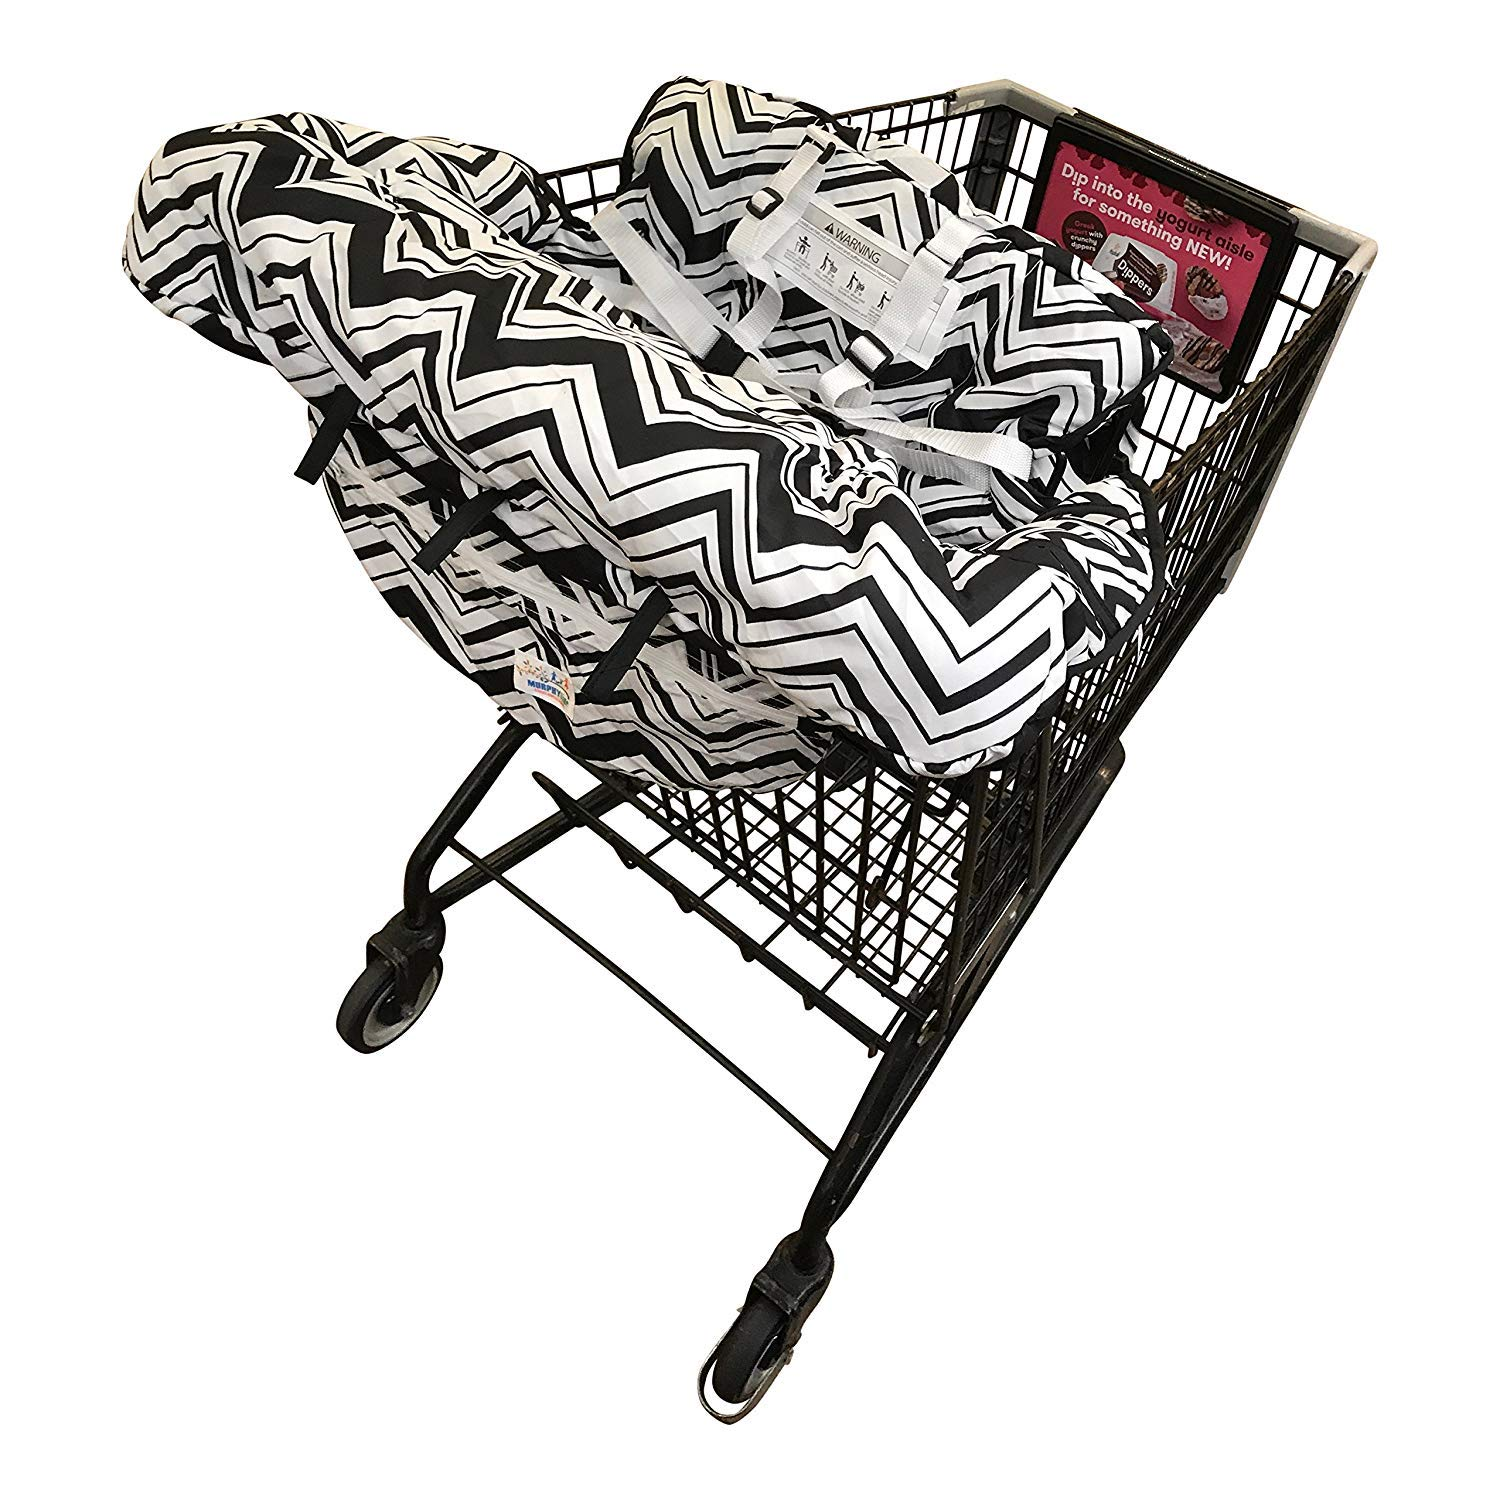 Shopping Cart Cover for Baby- 2-in-1 - Foldable Portable Seat with Bag for Infant to Toddler - Compatible with Grocery Cart Seat and High Chair -Black Chevron Pattern